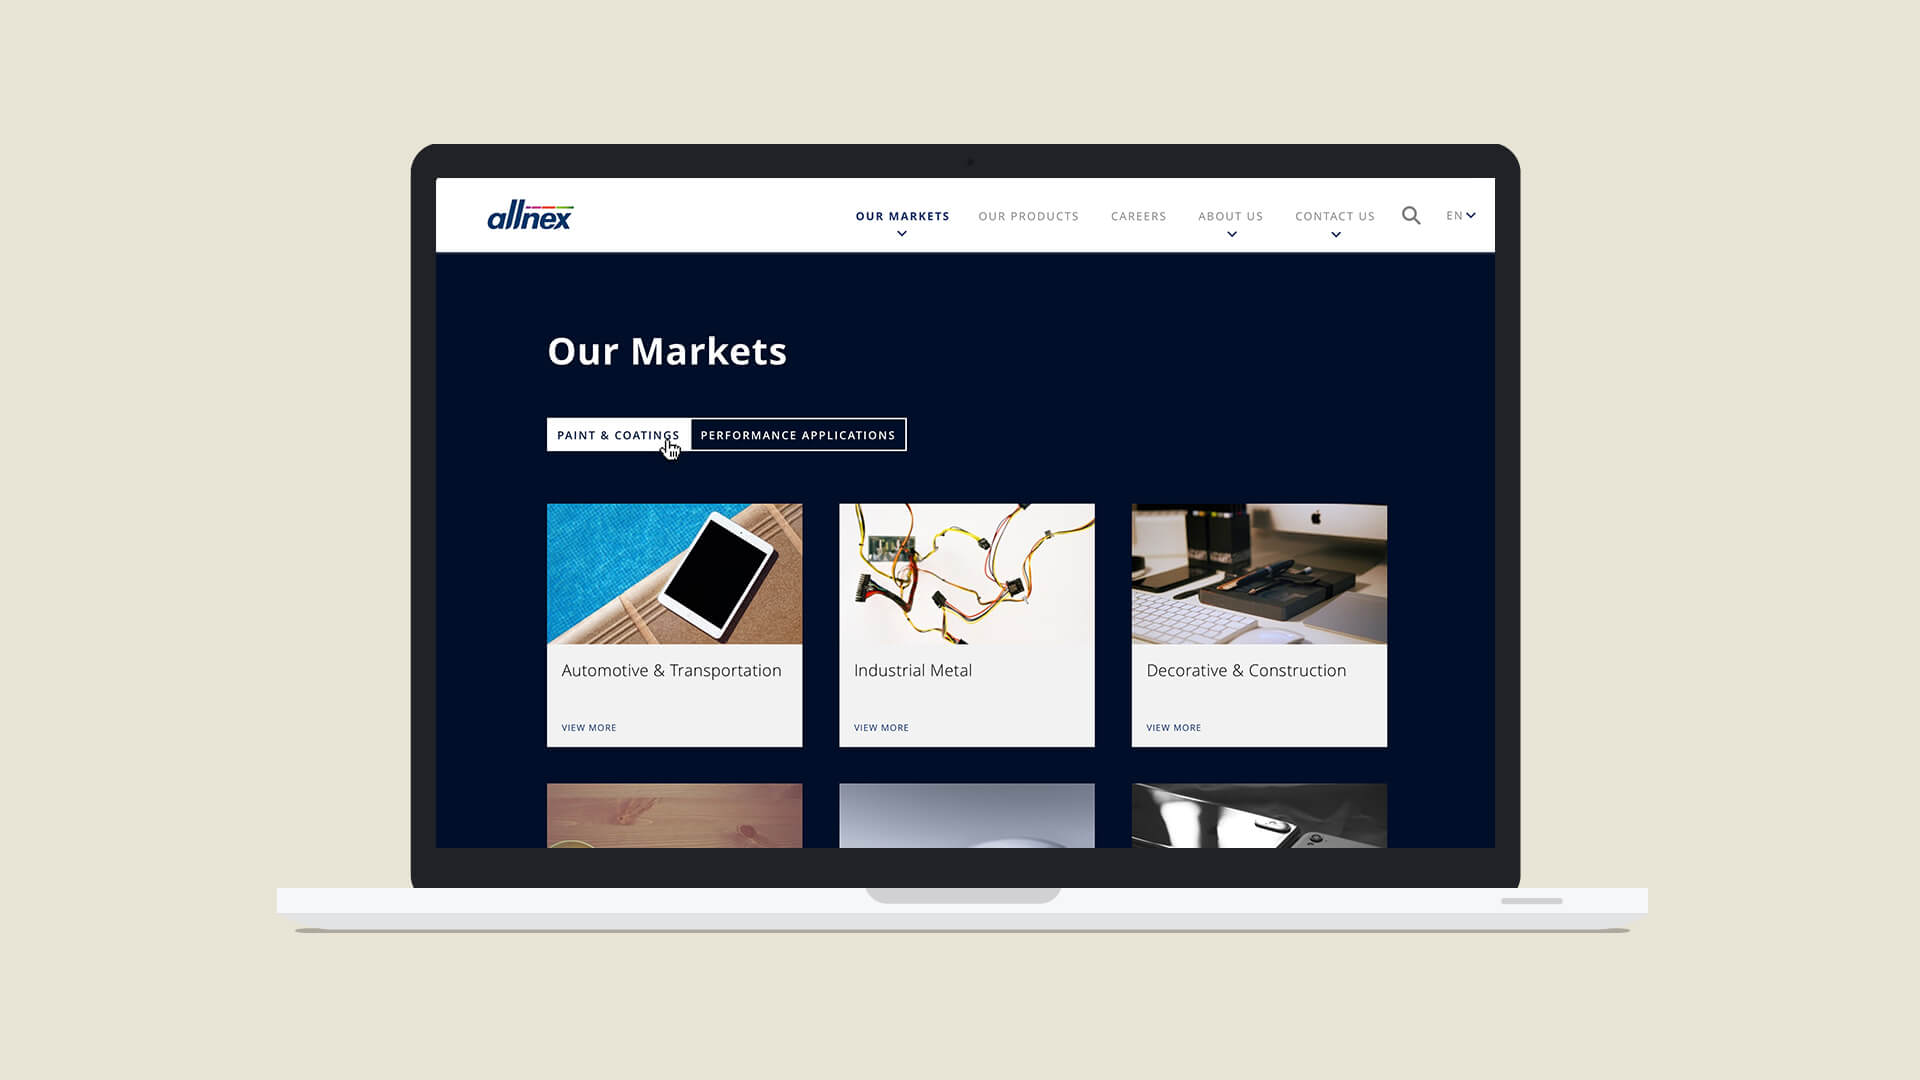 Allnex website - Our Markets page